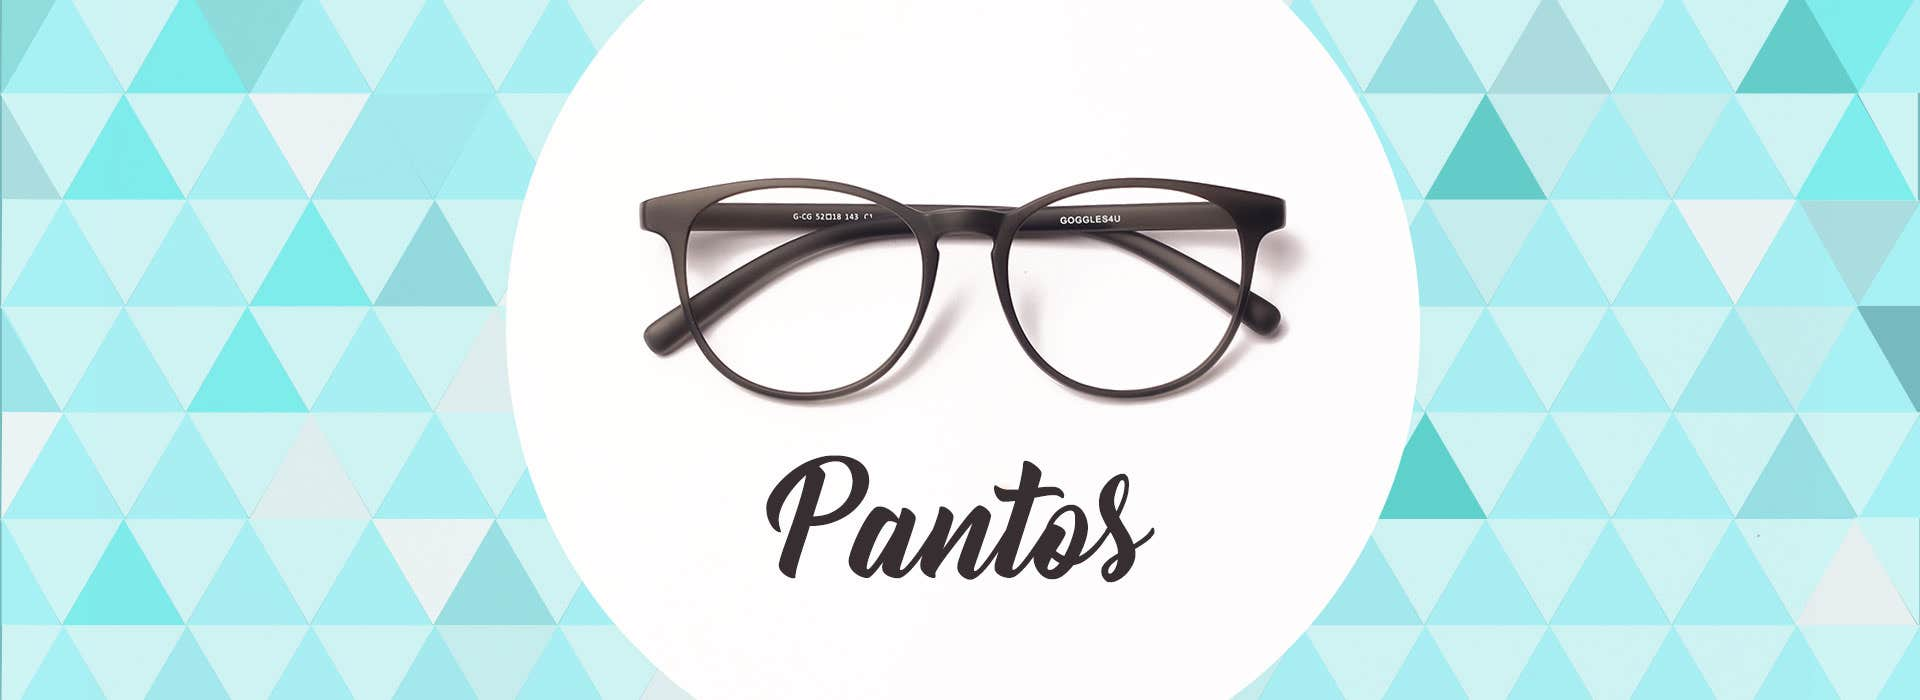 Buy Pantos Eyeglasses at Goggles4U